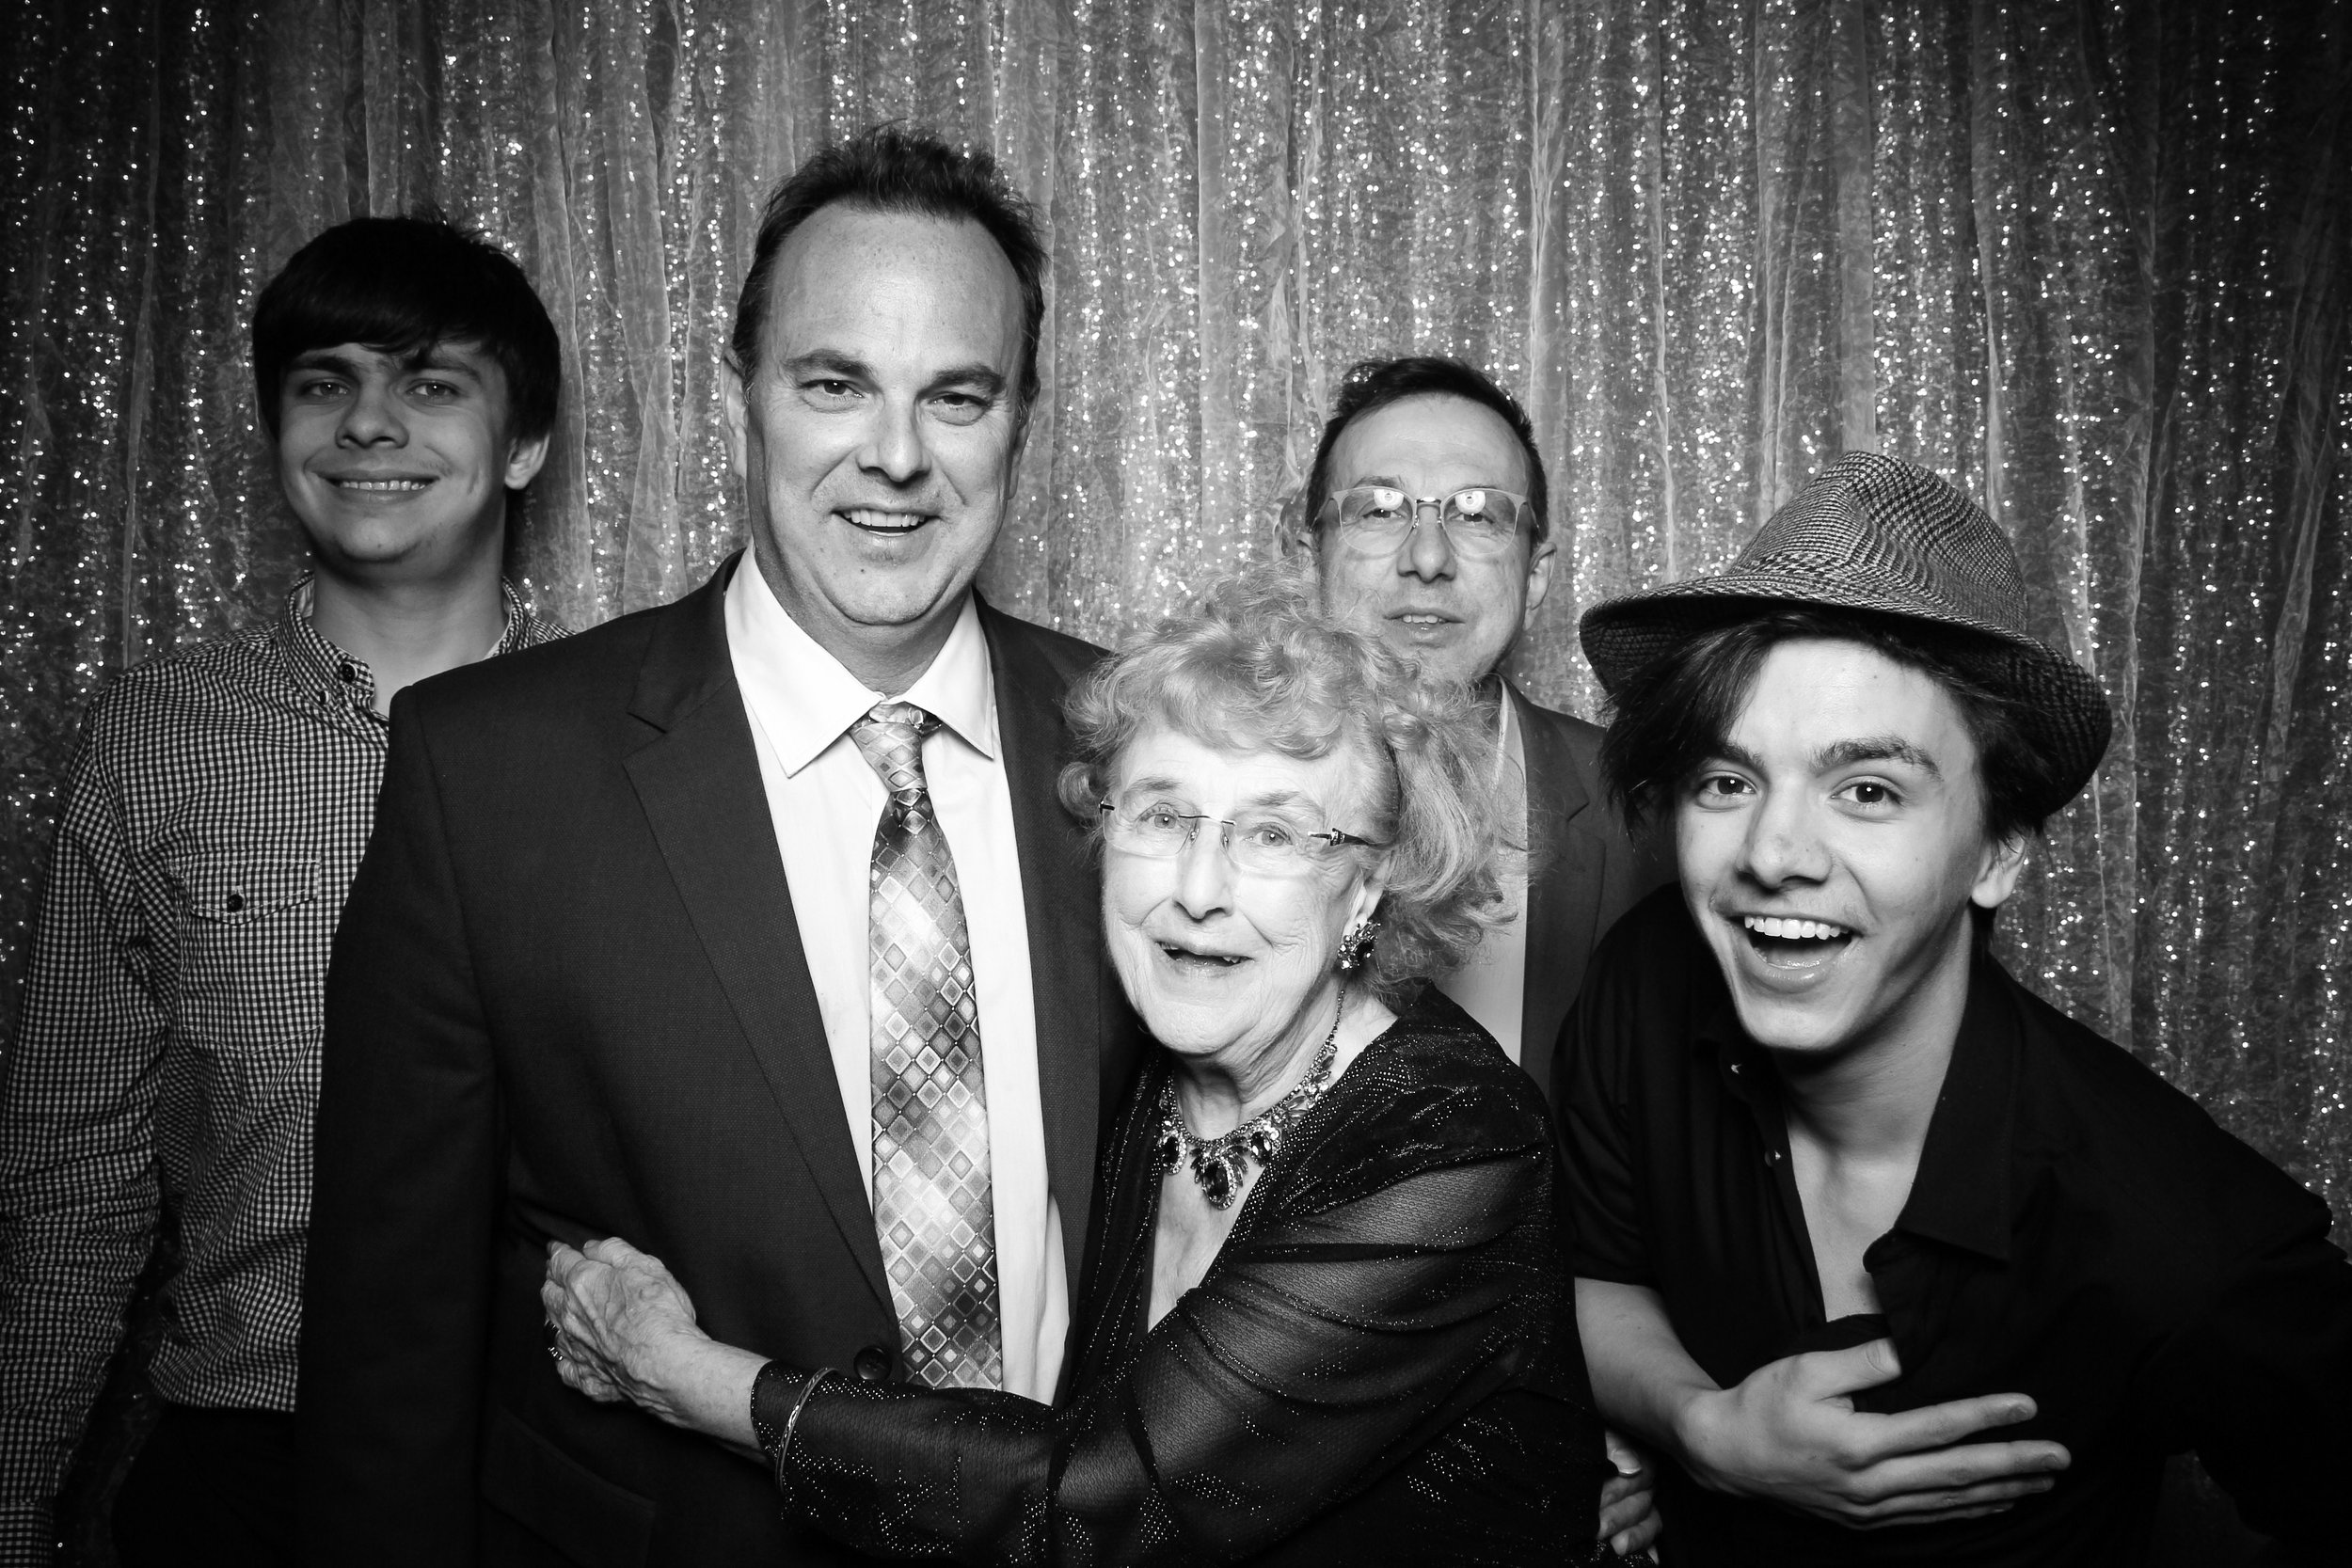 Chicago_Vintage_Wedding_Photobooth_Glen_Club_33.jpg